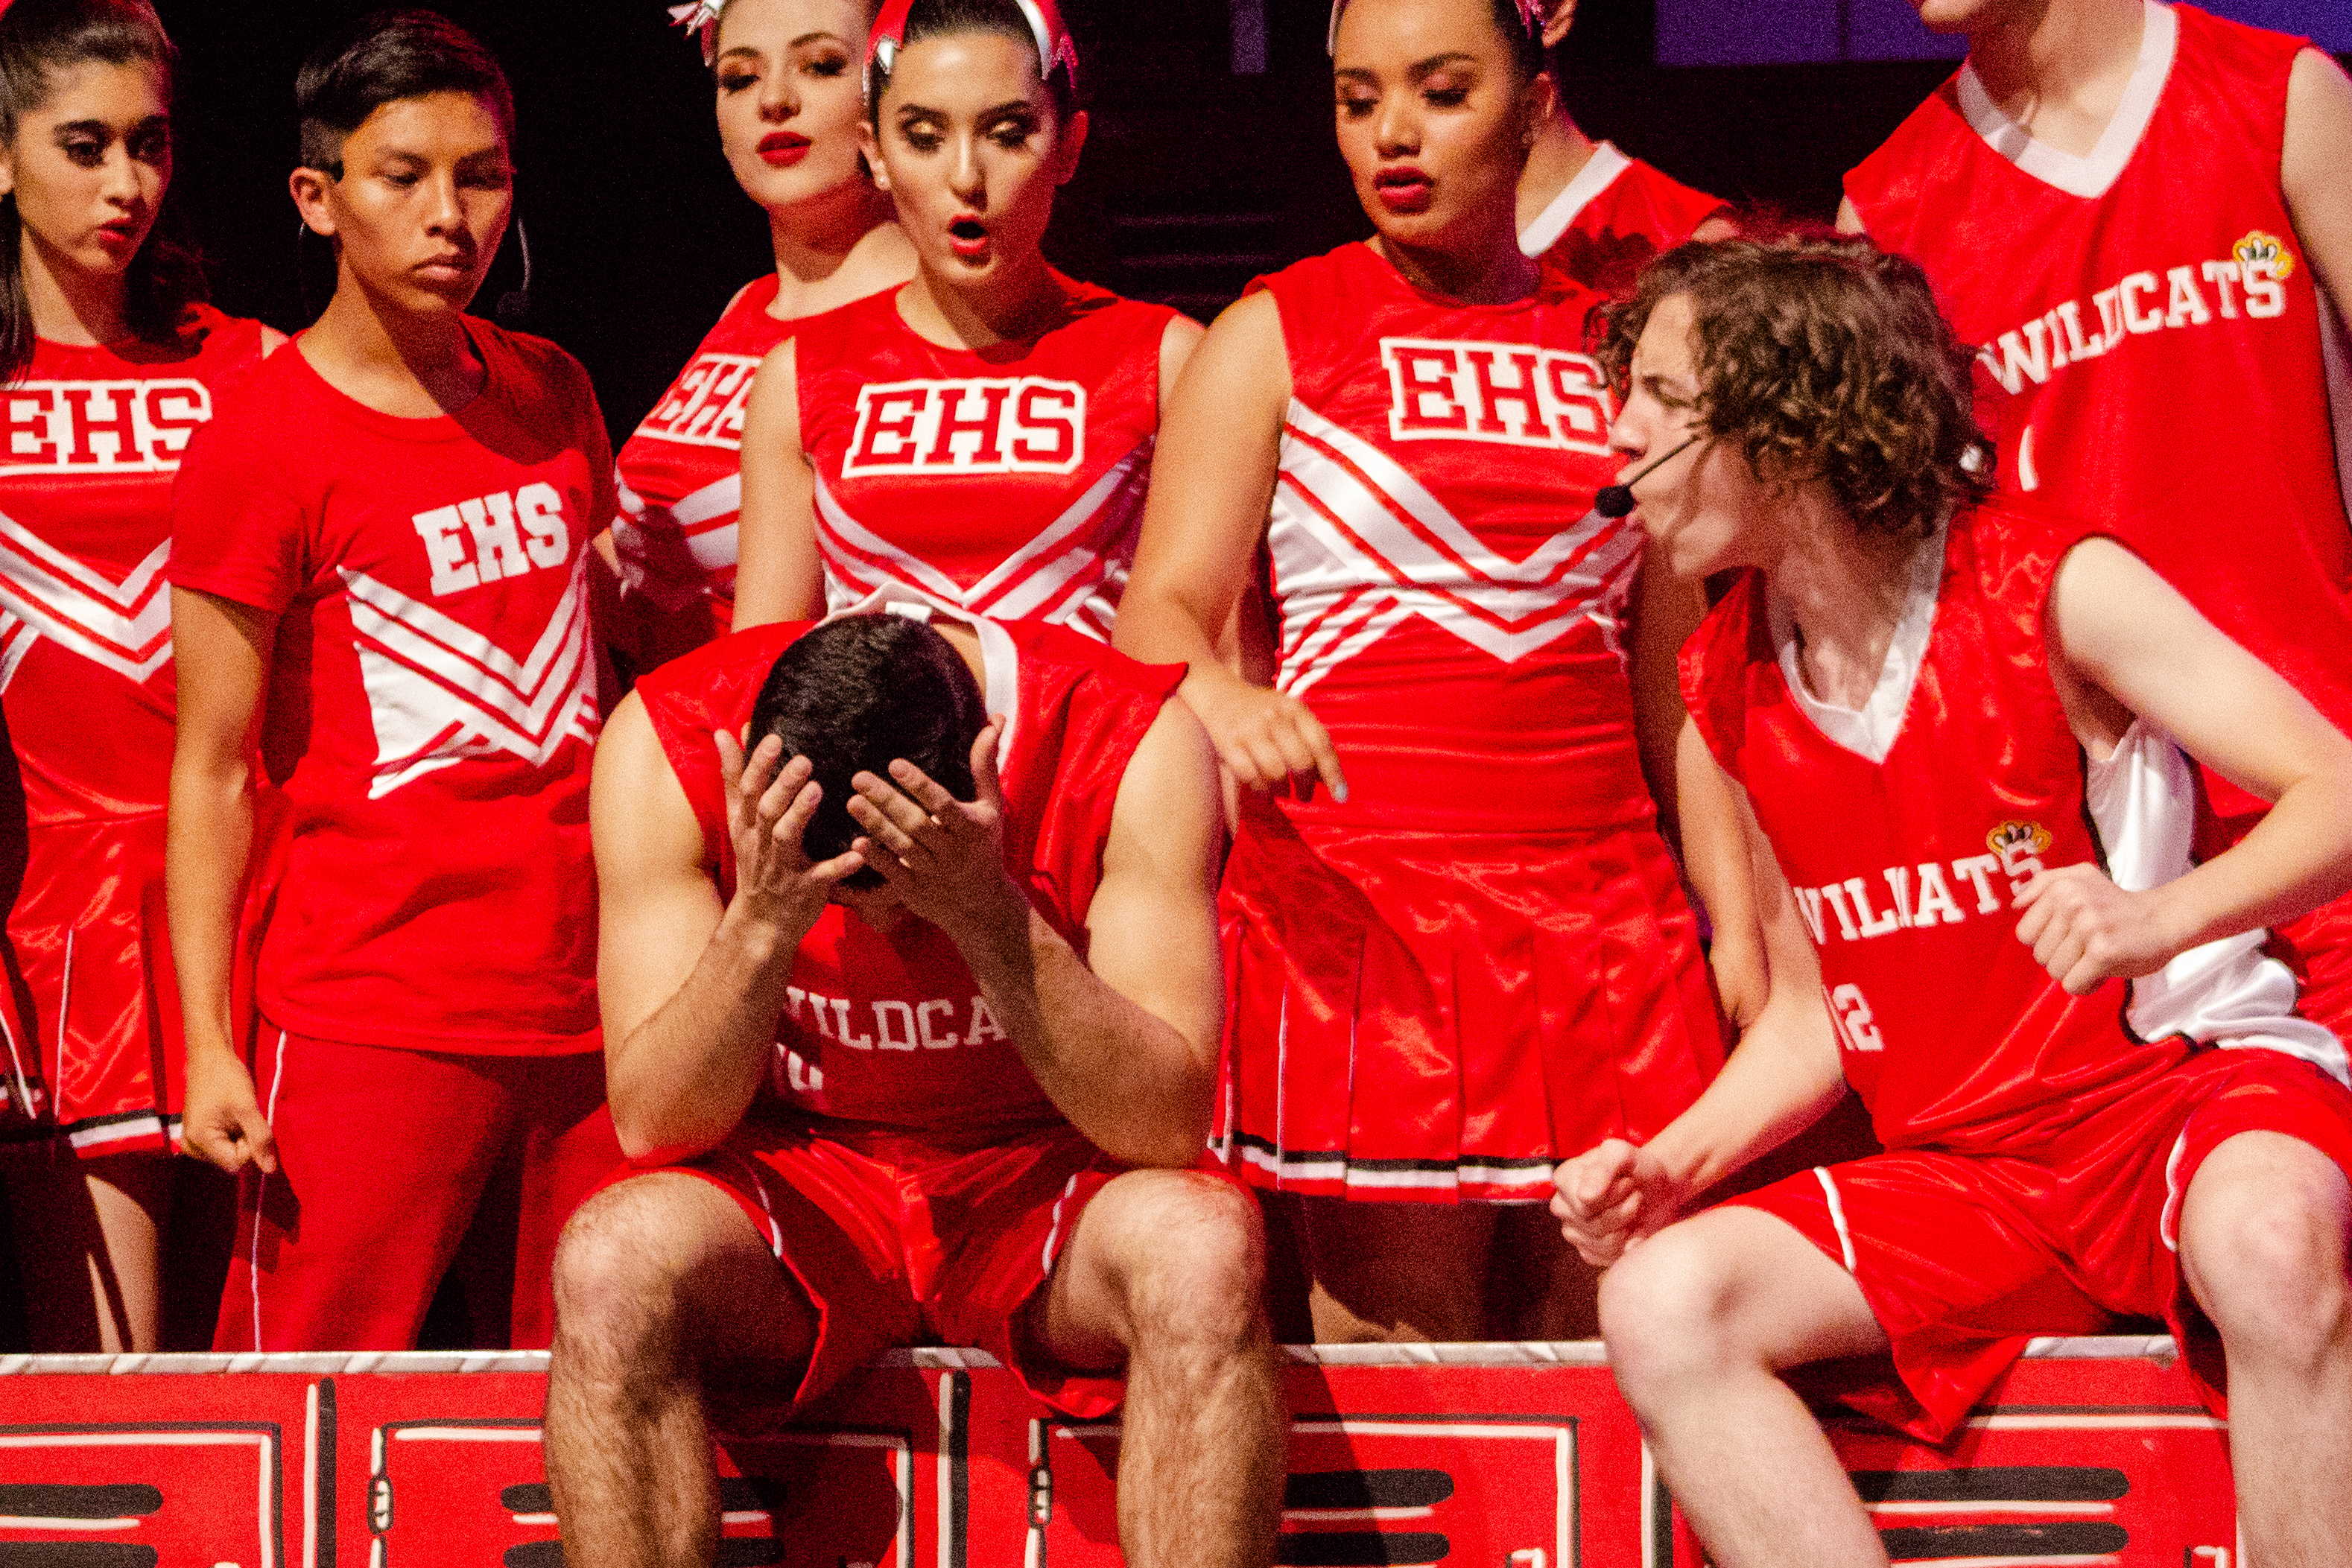 José Pablo en el musical High School Musical